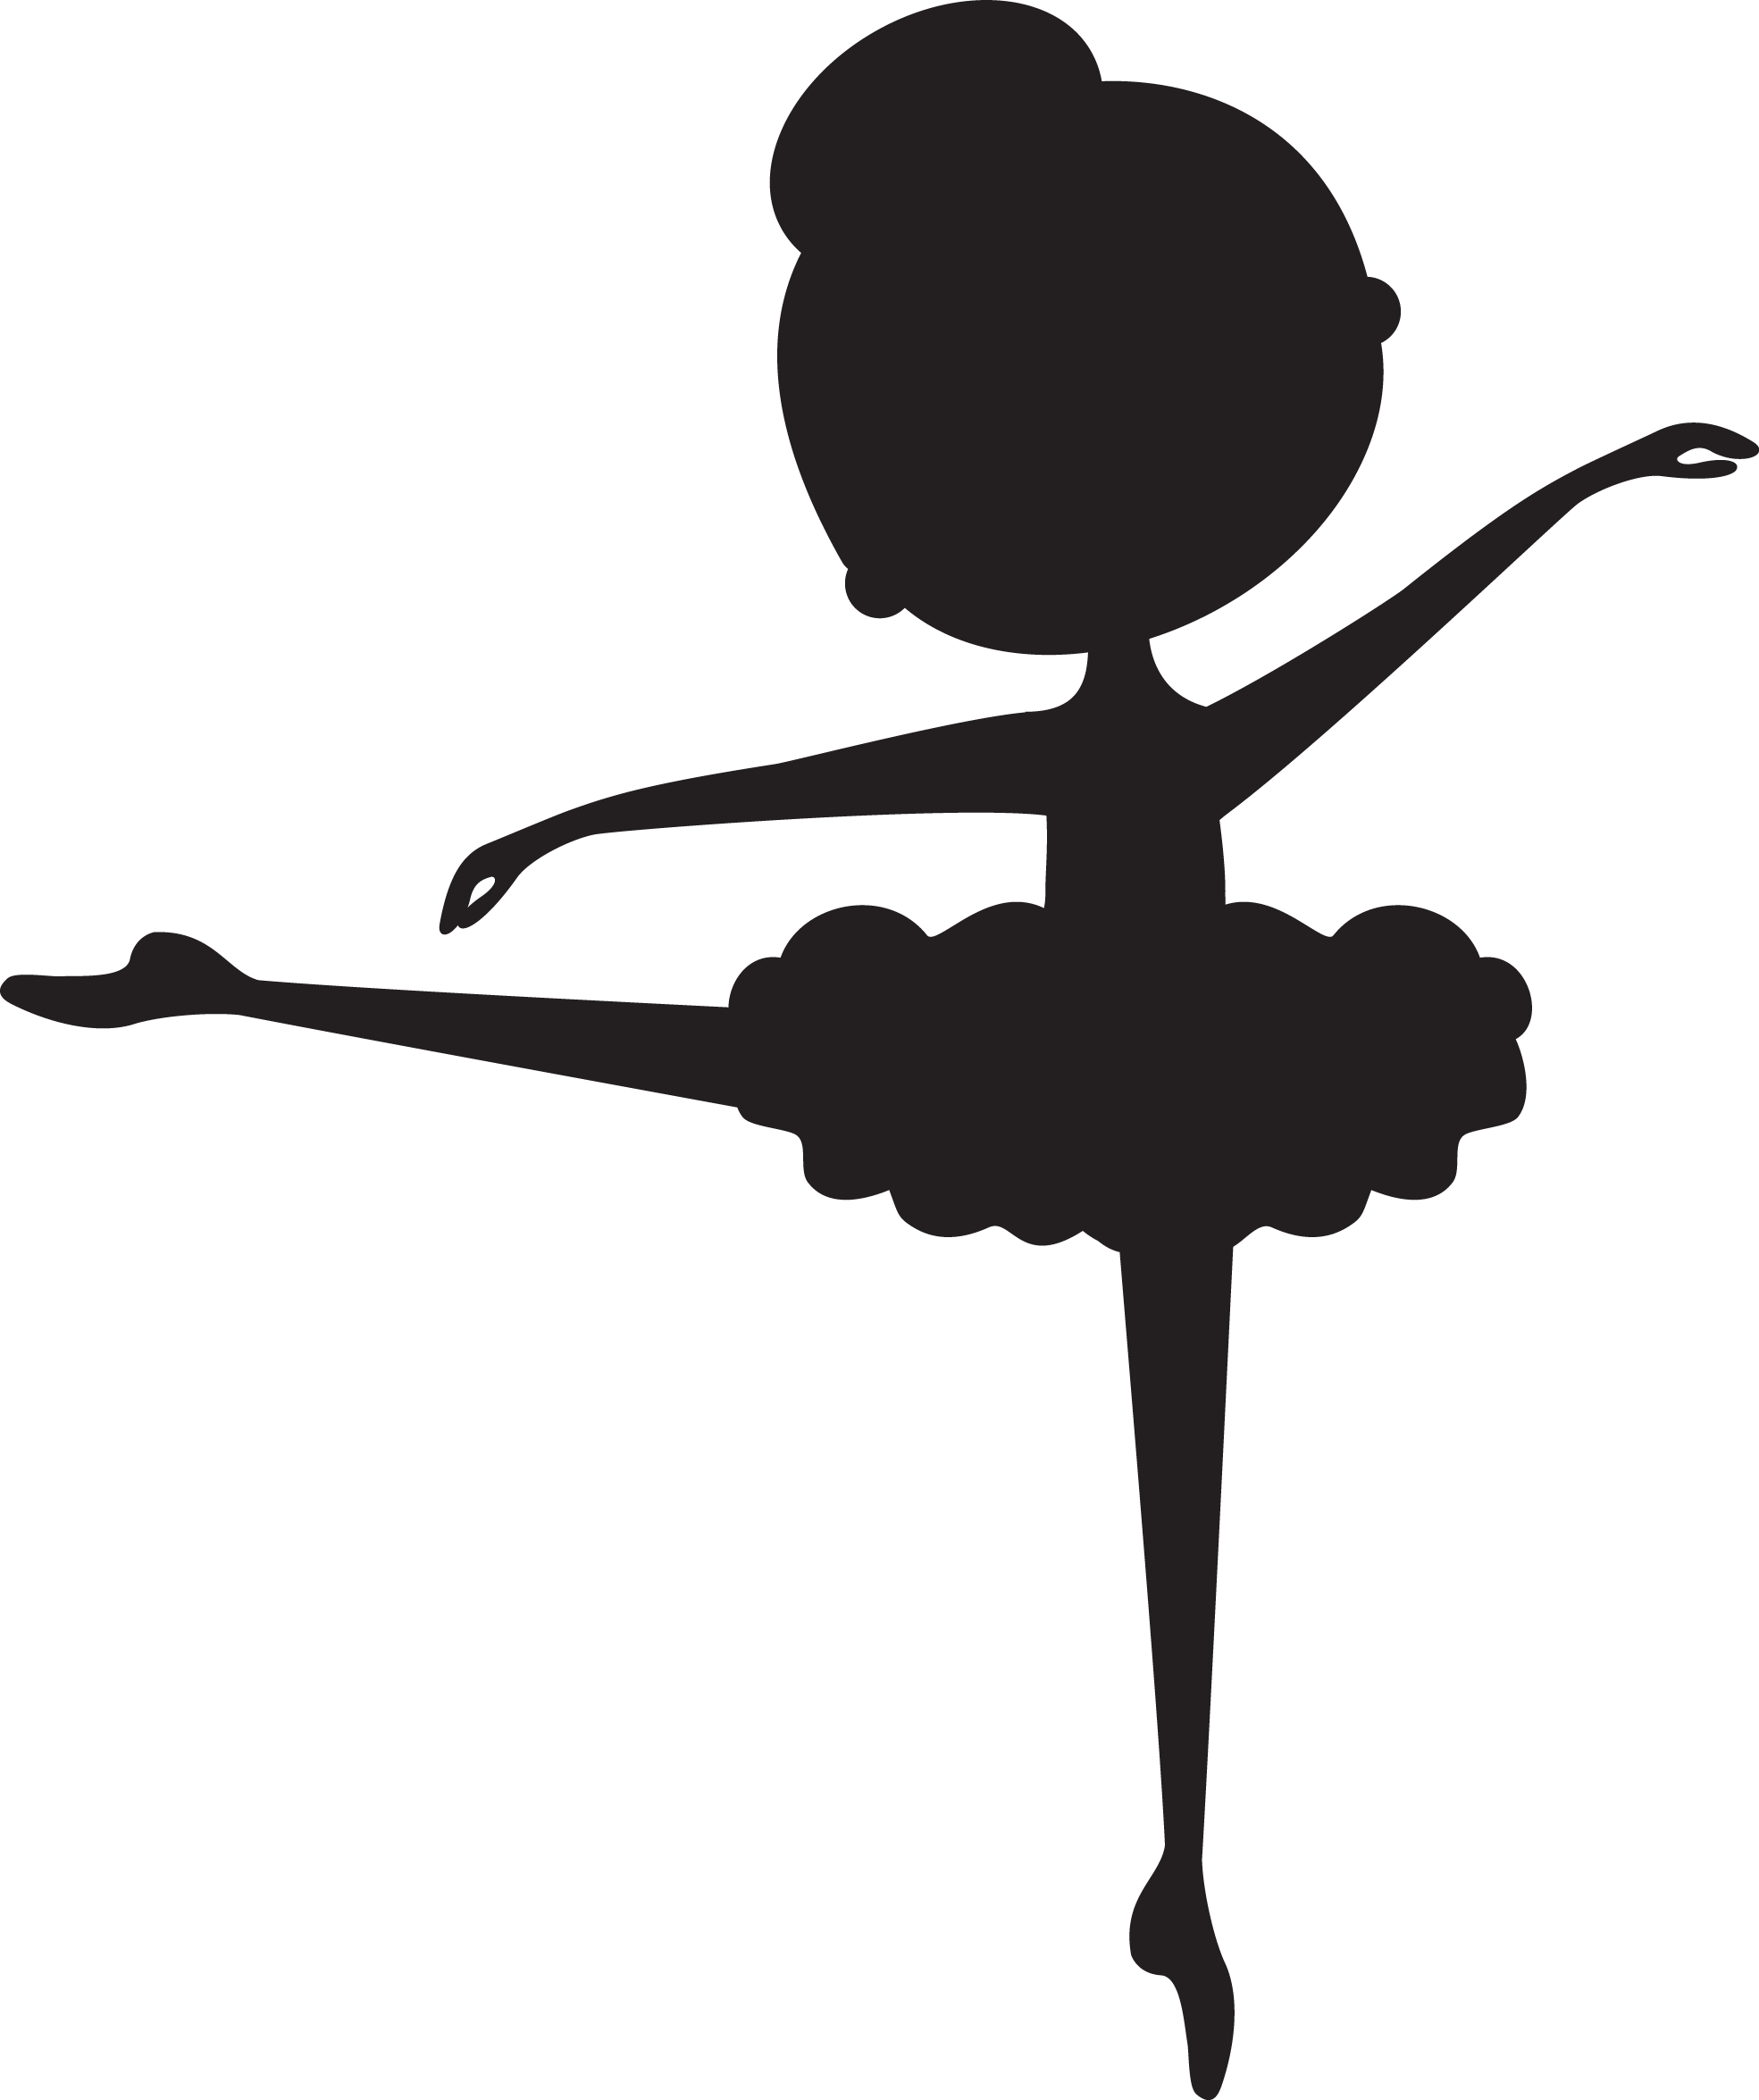 1969x2351 Images Of Ballet Silhouette Png